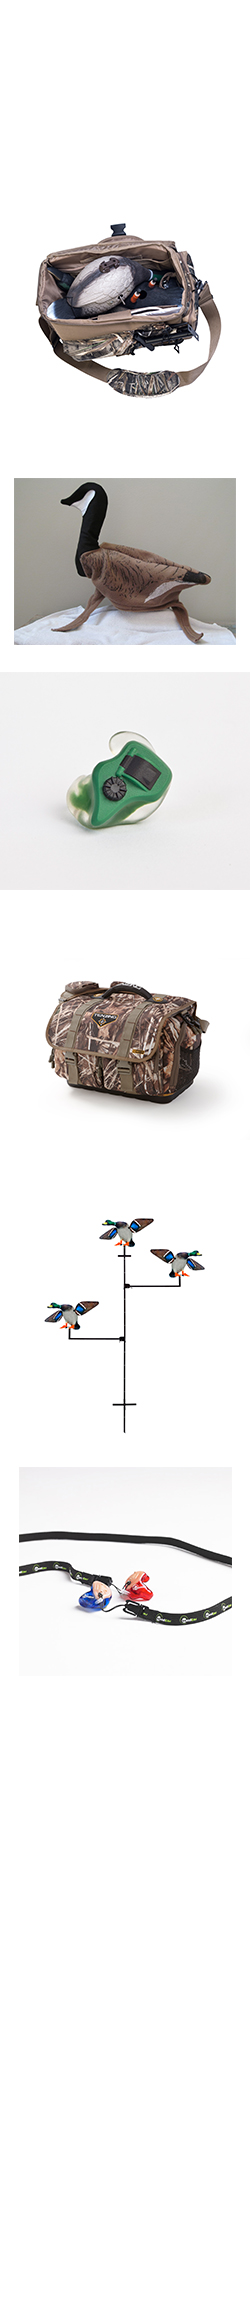 Top Tools: Hunting Accessories